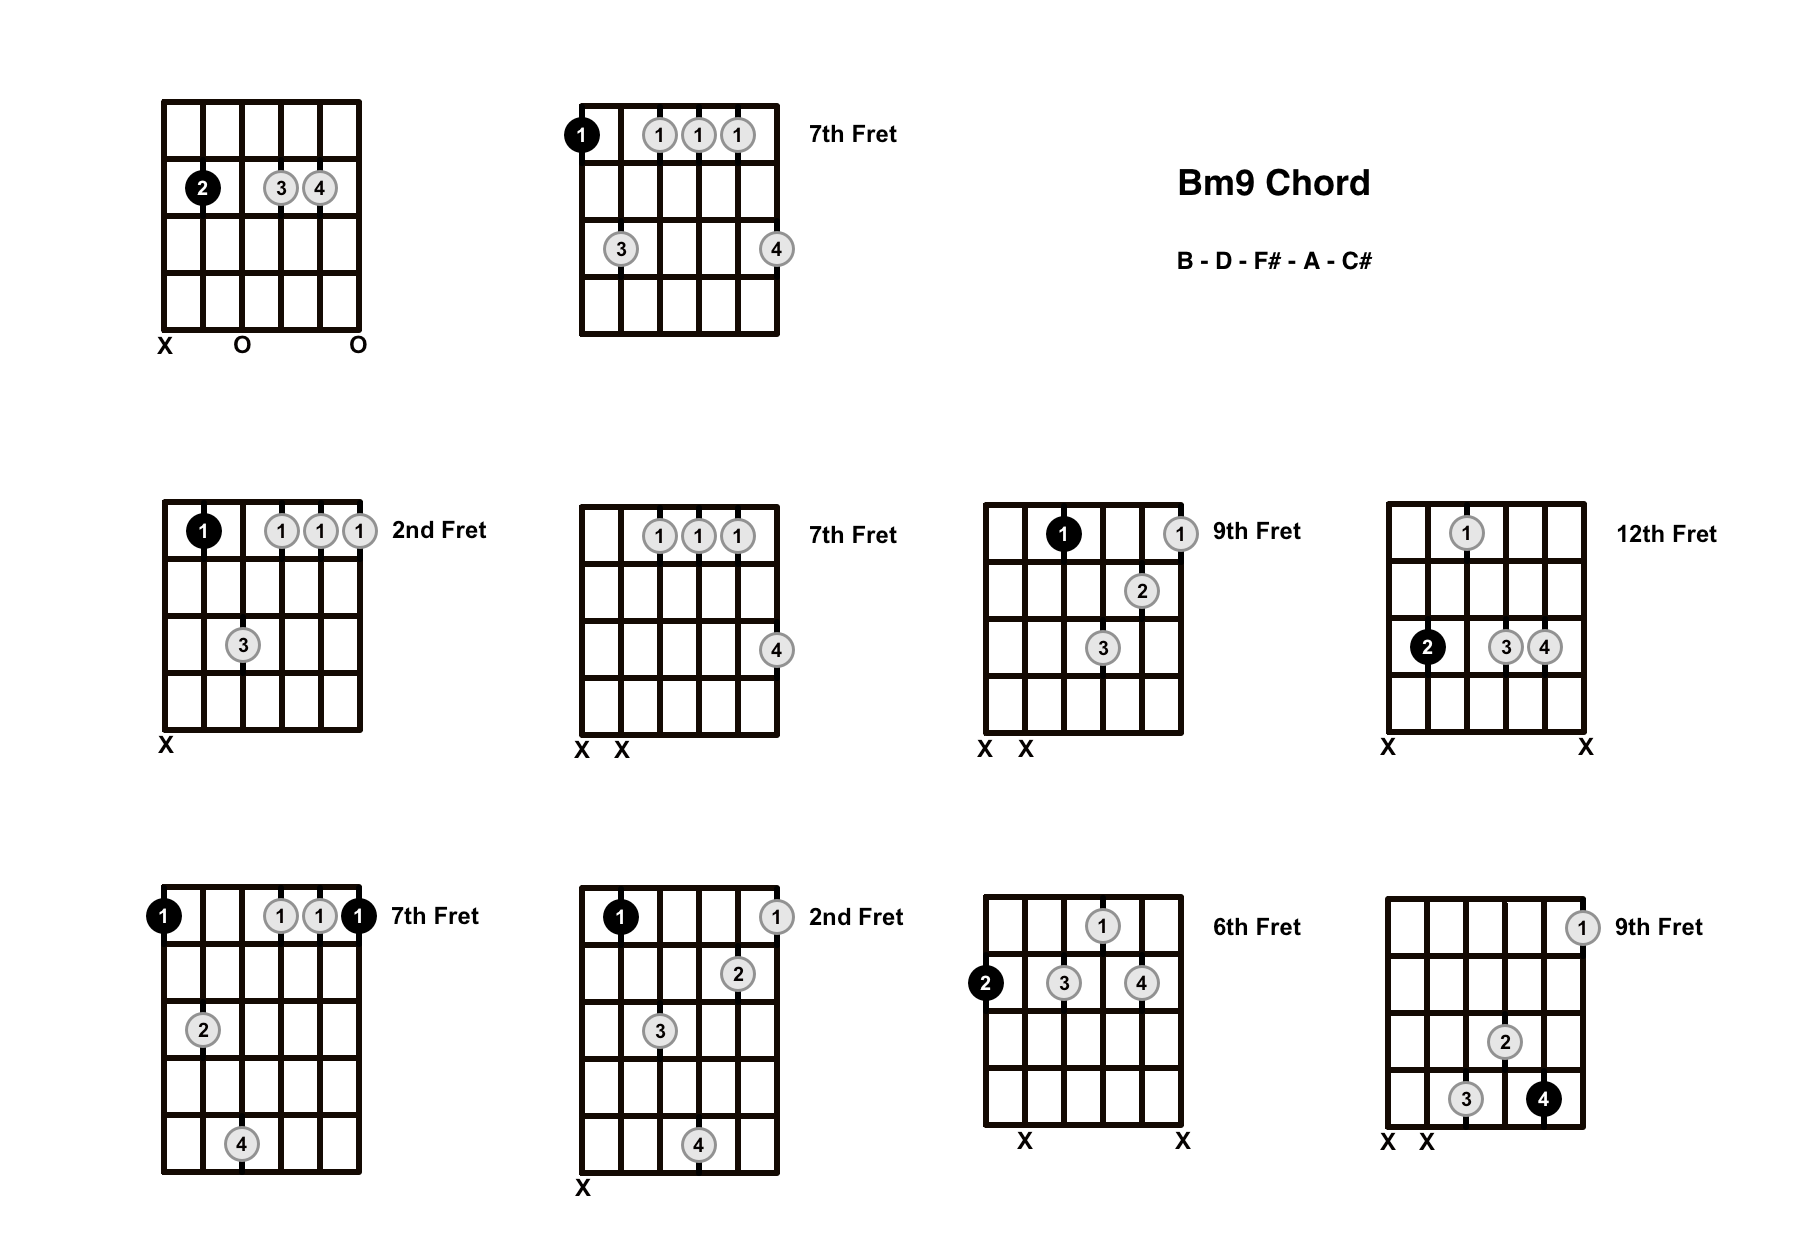 Bm9 Chord On The Guitar (B Minor 9) – Diagrams, Finger Positions and Theory